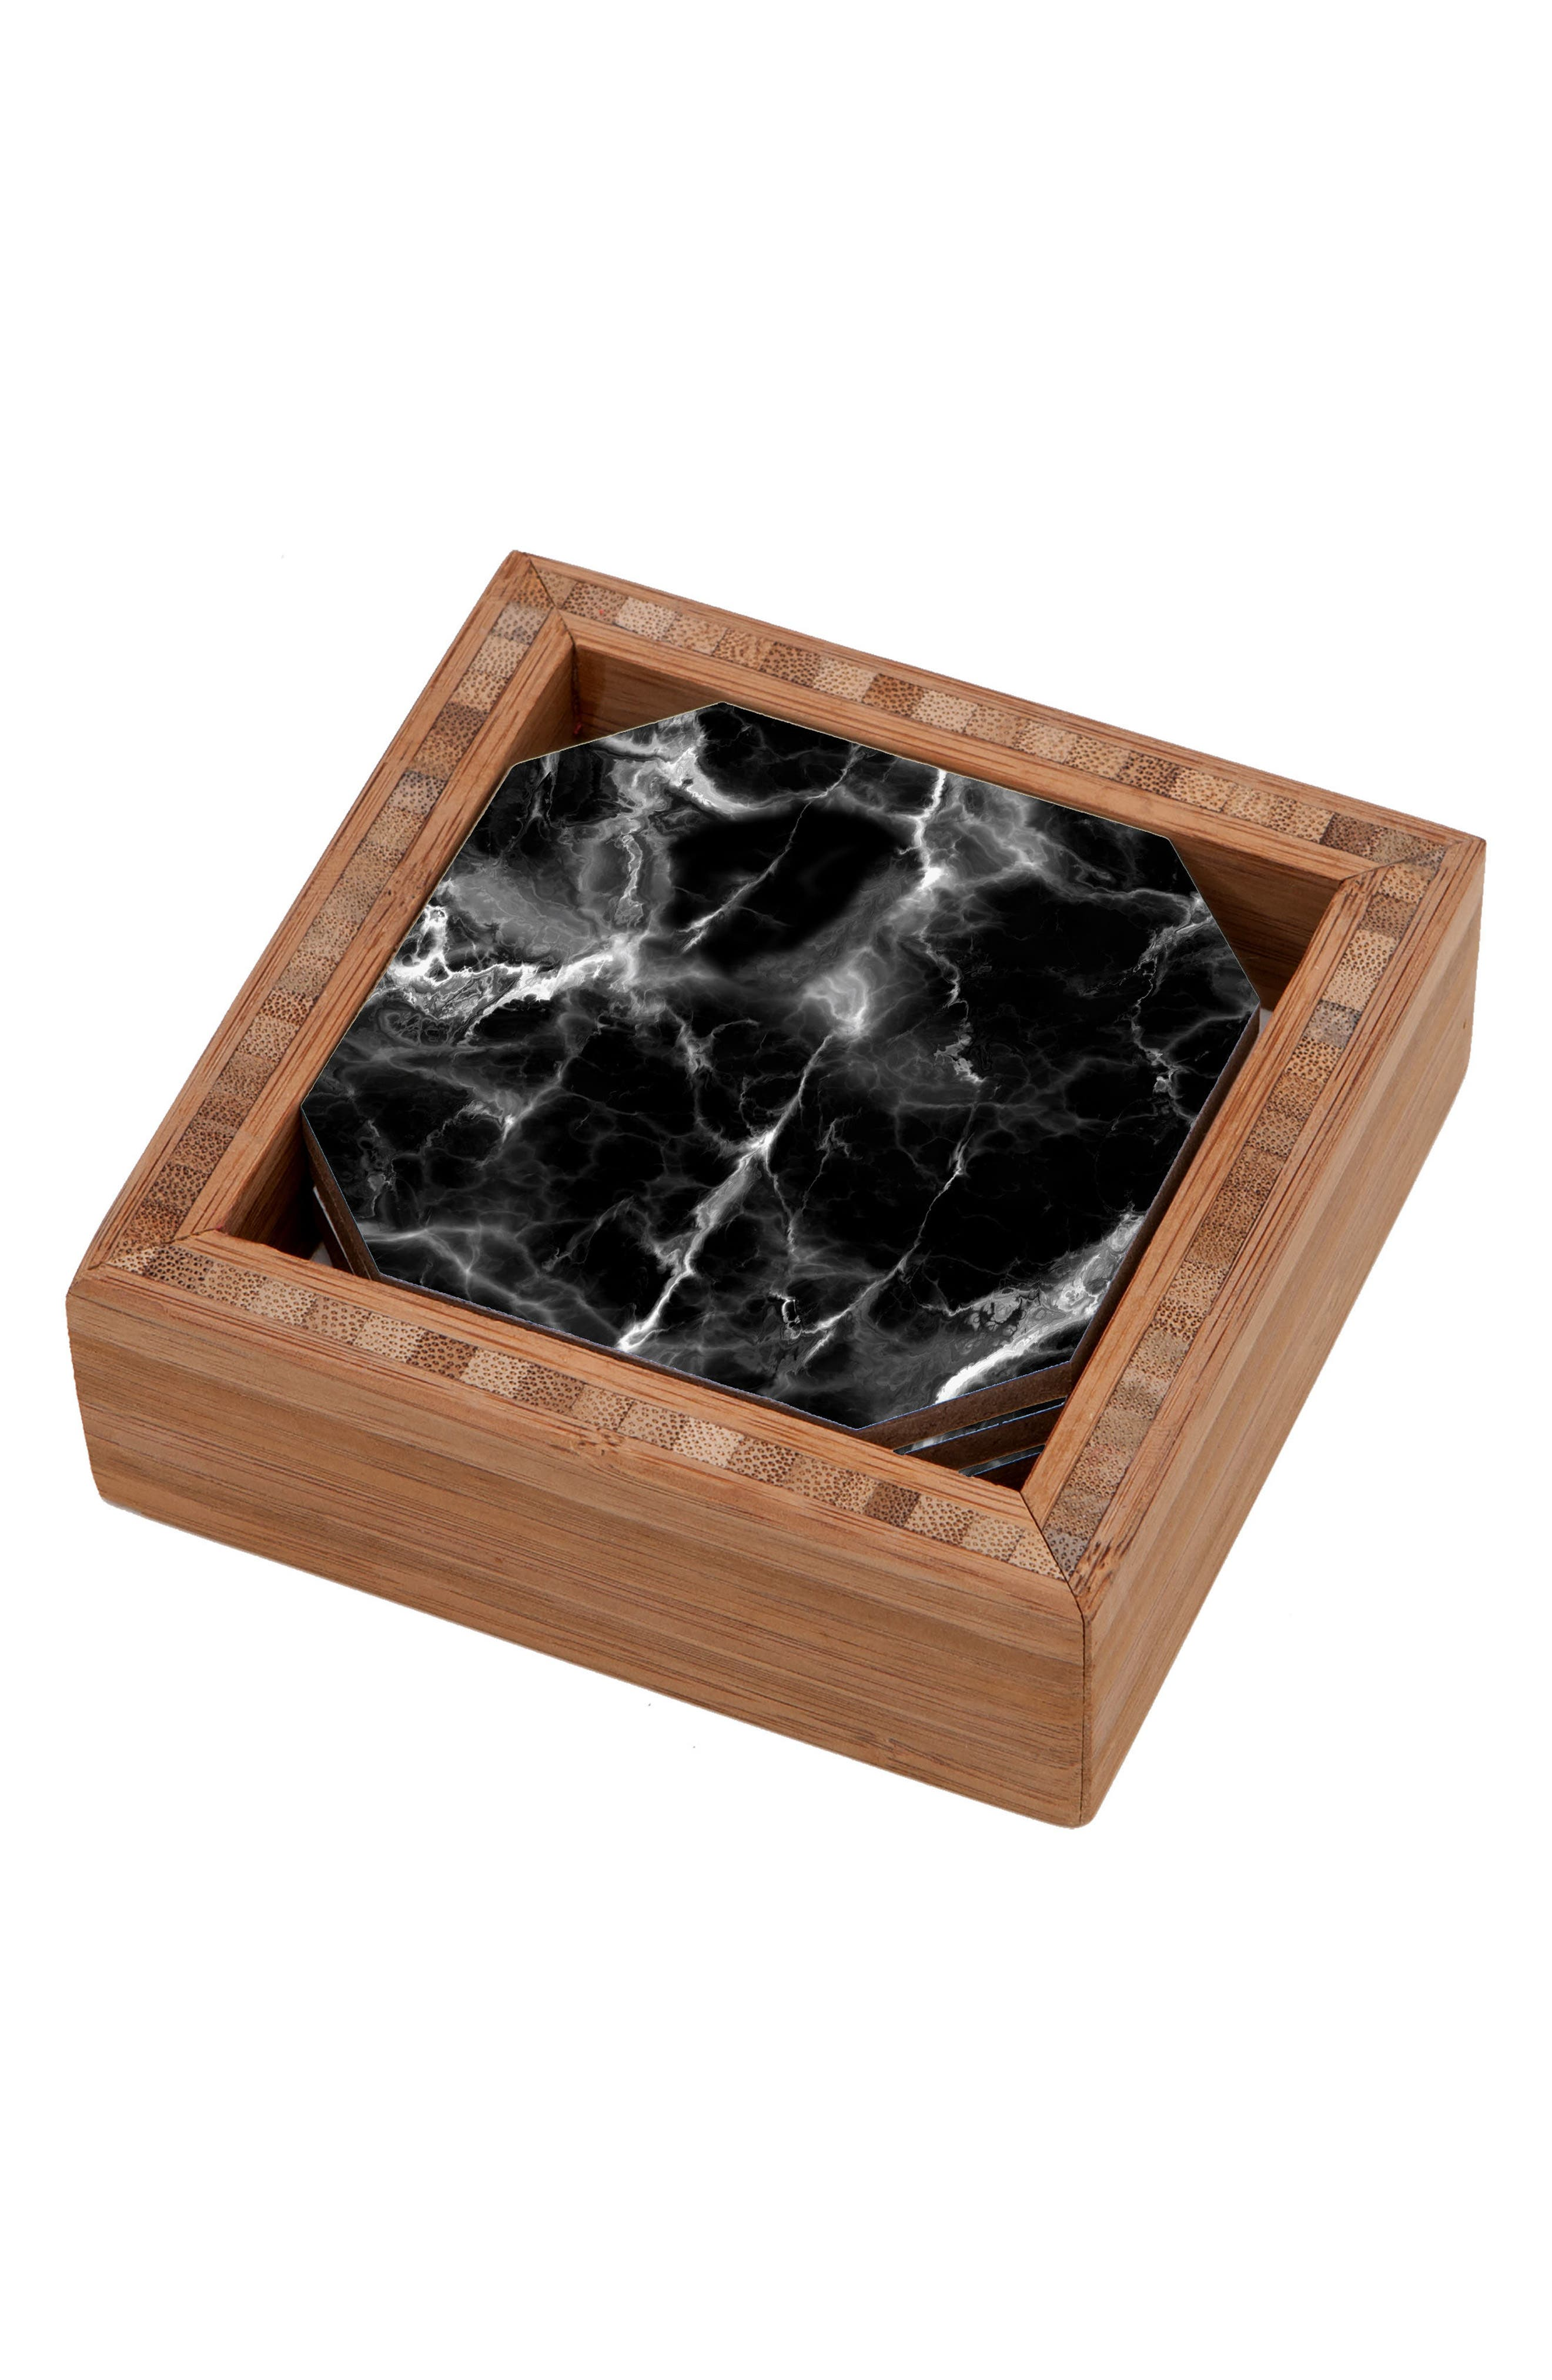 Alternate Image 1 Selected - Deny Designs Marble No. 2 Set of 4 Coasters